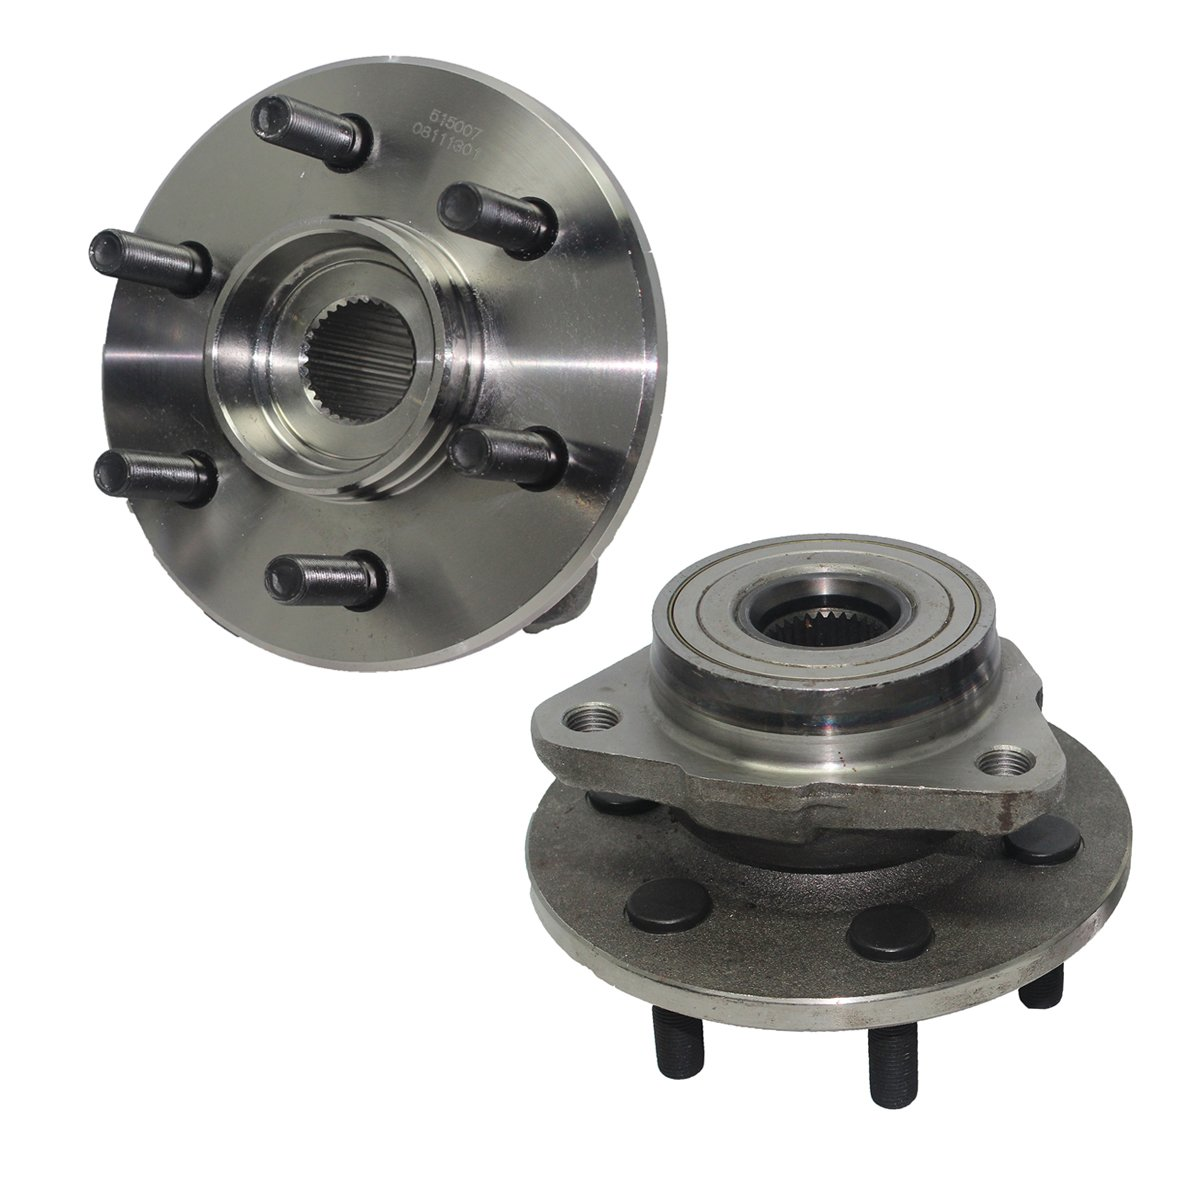 Detroit Axle Front Wheel Hub and Bearing Assembly - Driver and Passenger Side fits 4x4 Only No ABS - 1997-2004 Dodge Dakota - [98-03 Dodge Durango]